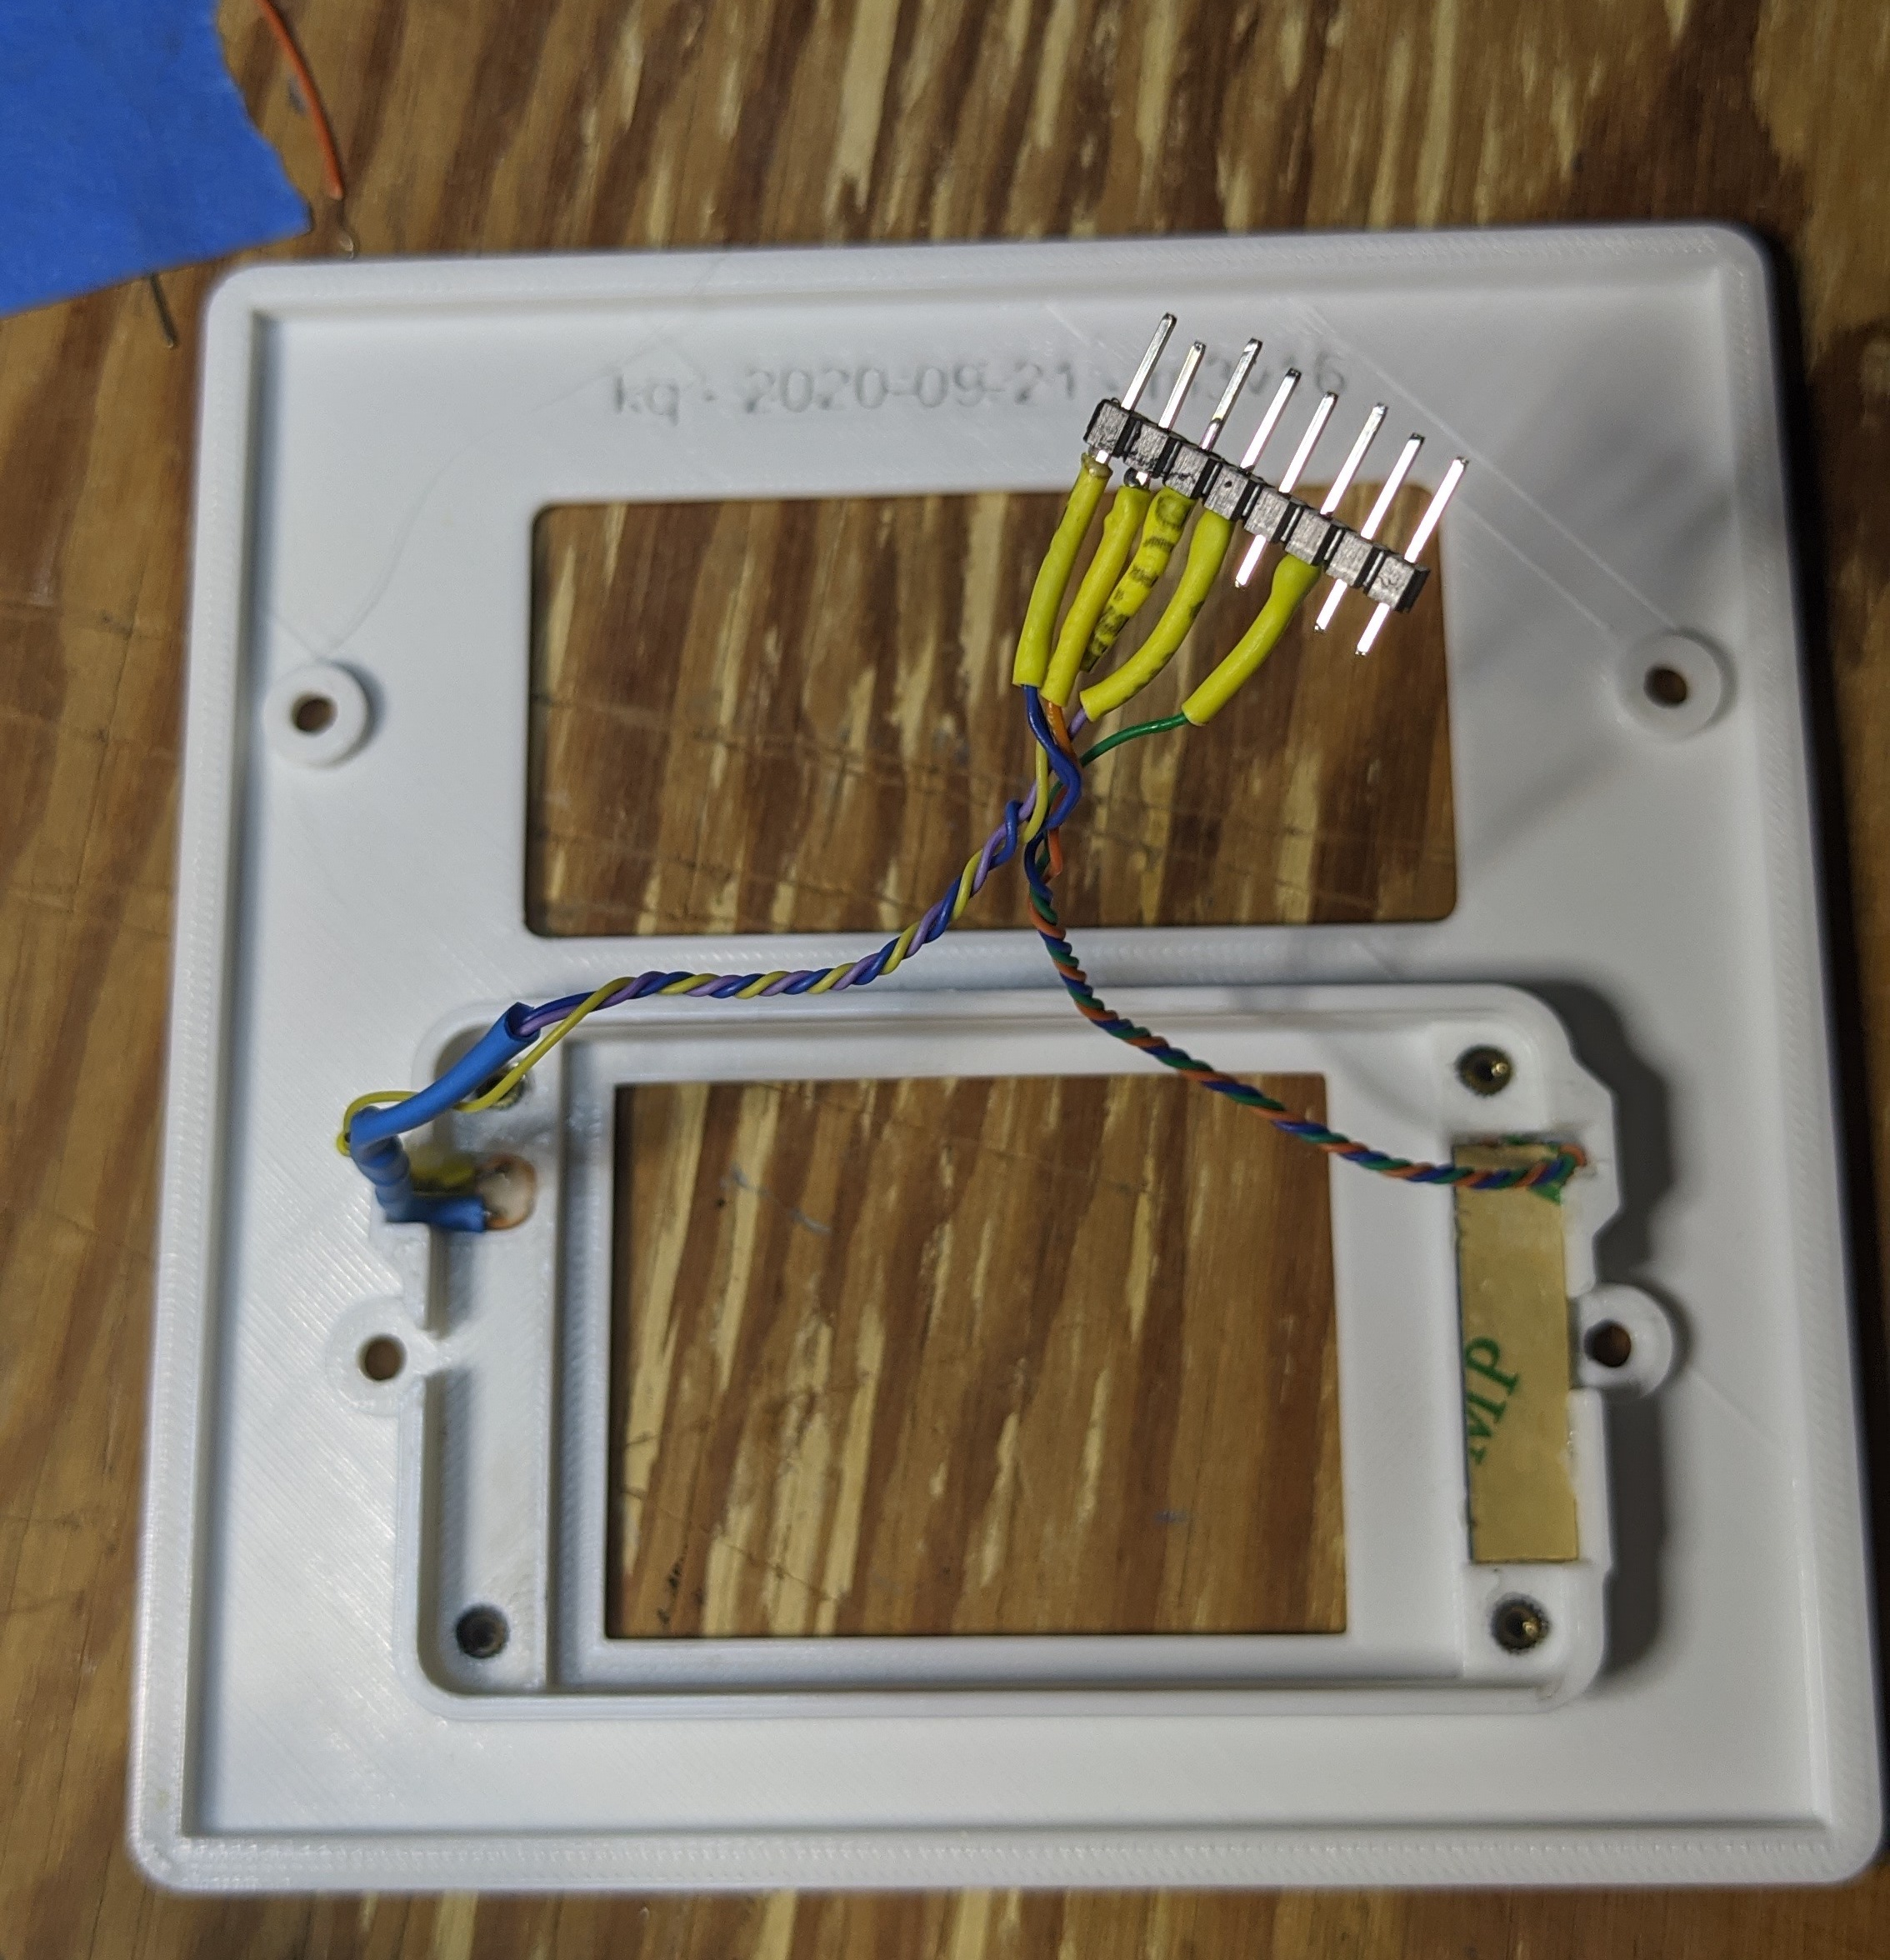 picture showing each component in the decor plate and the finished wiring harness.